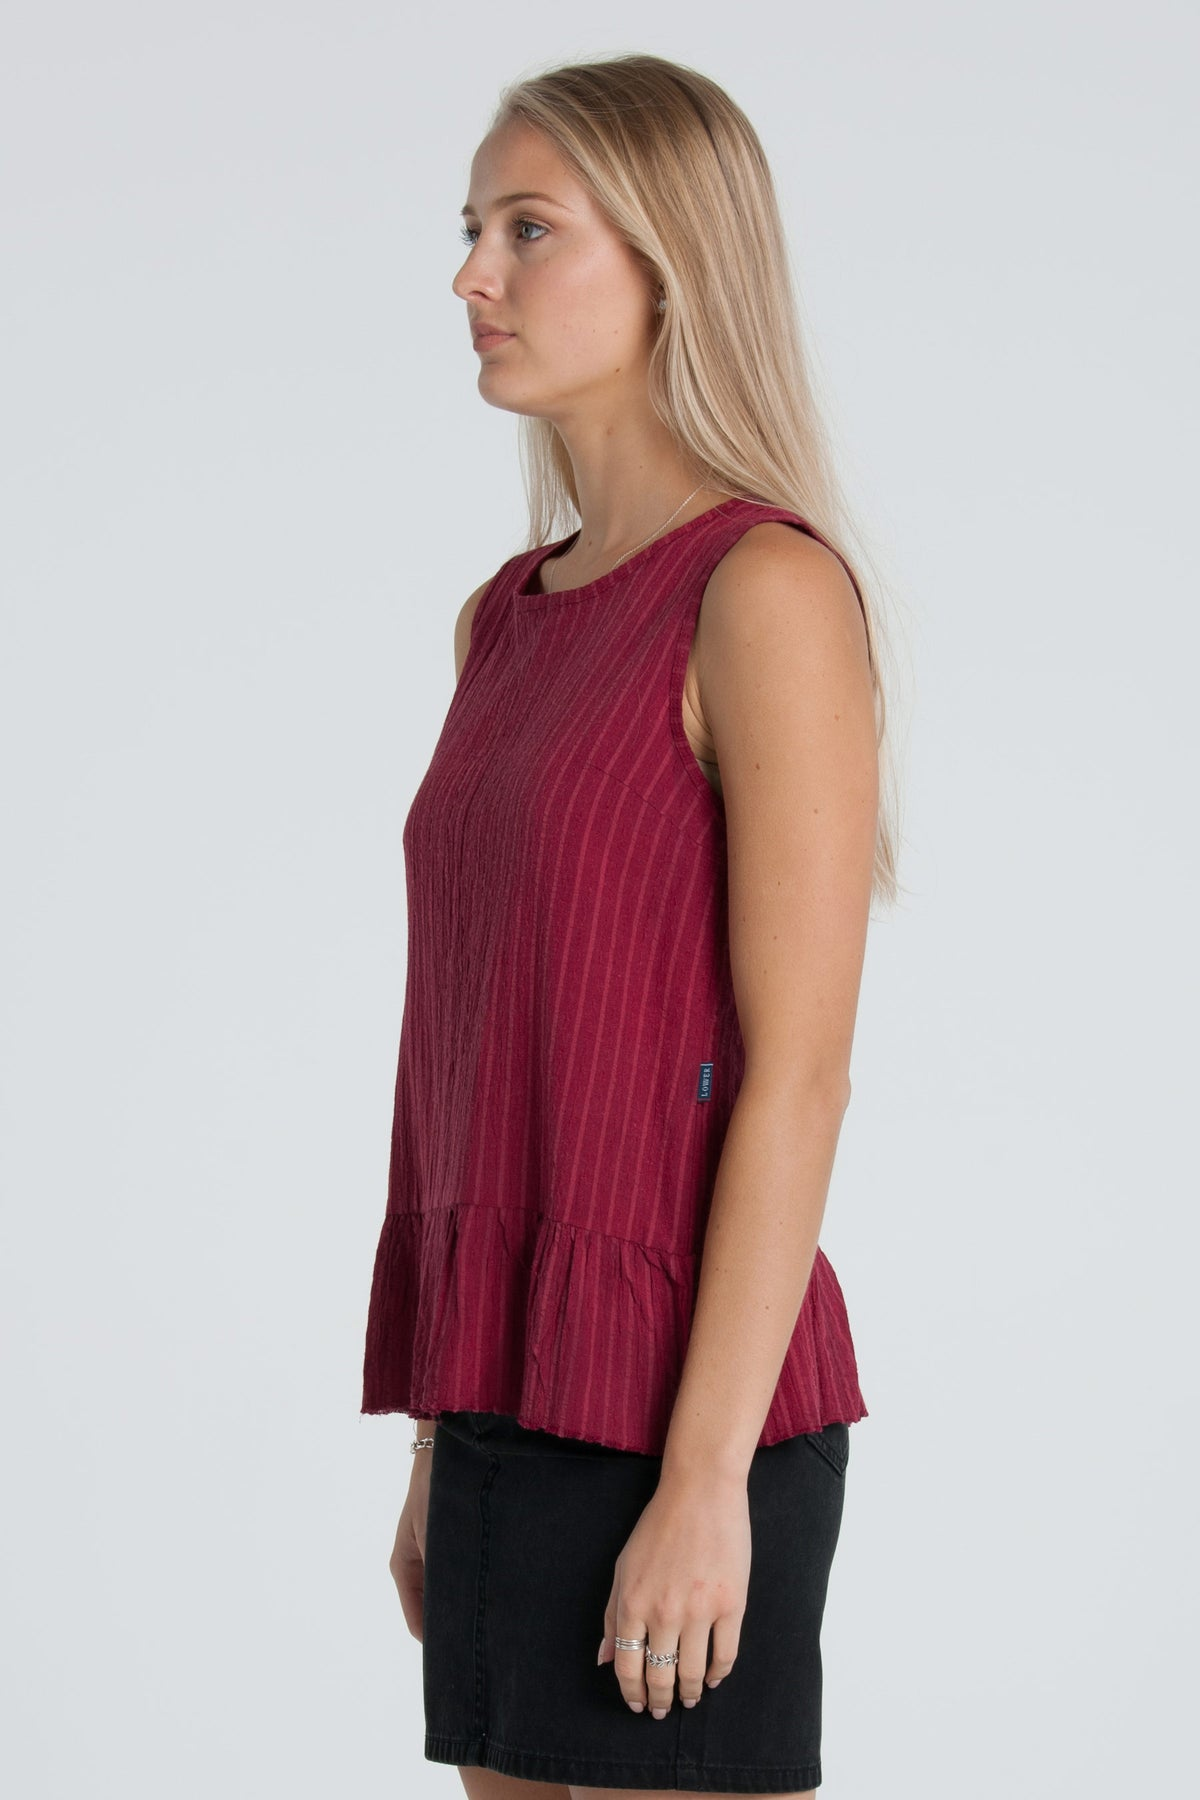 Frida Top - Cherry